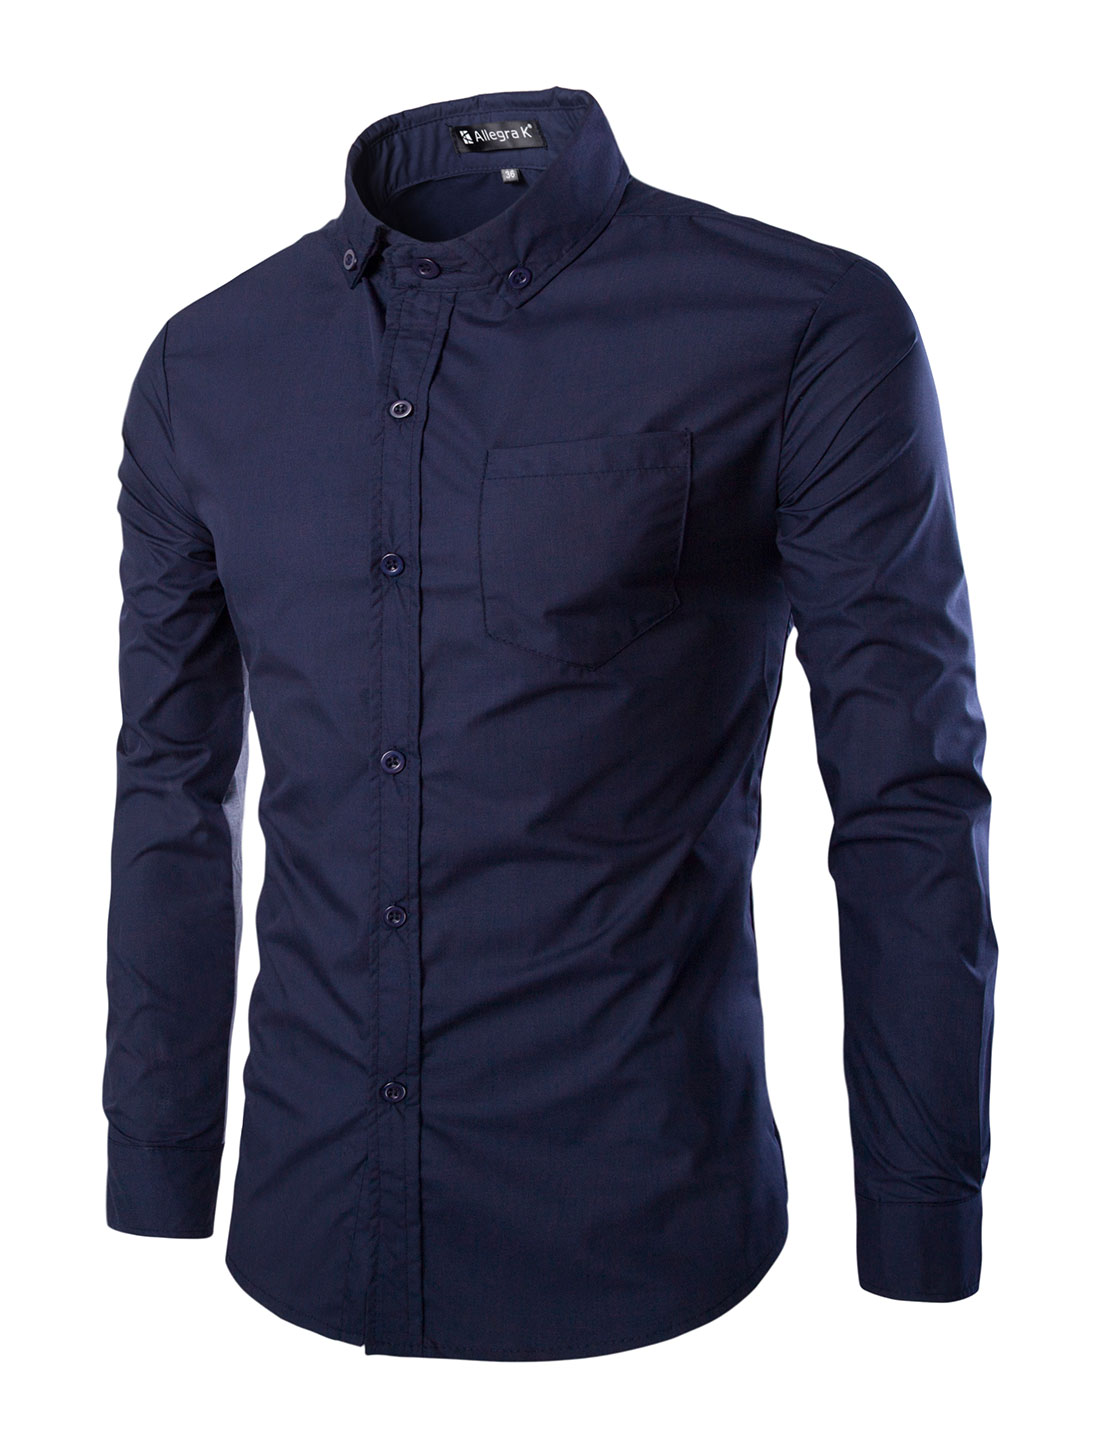 Men Contrast Color Long Sleeves Button Down Shirt w Pocket Blue S